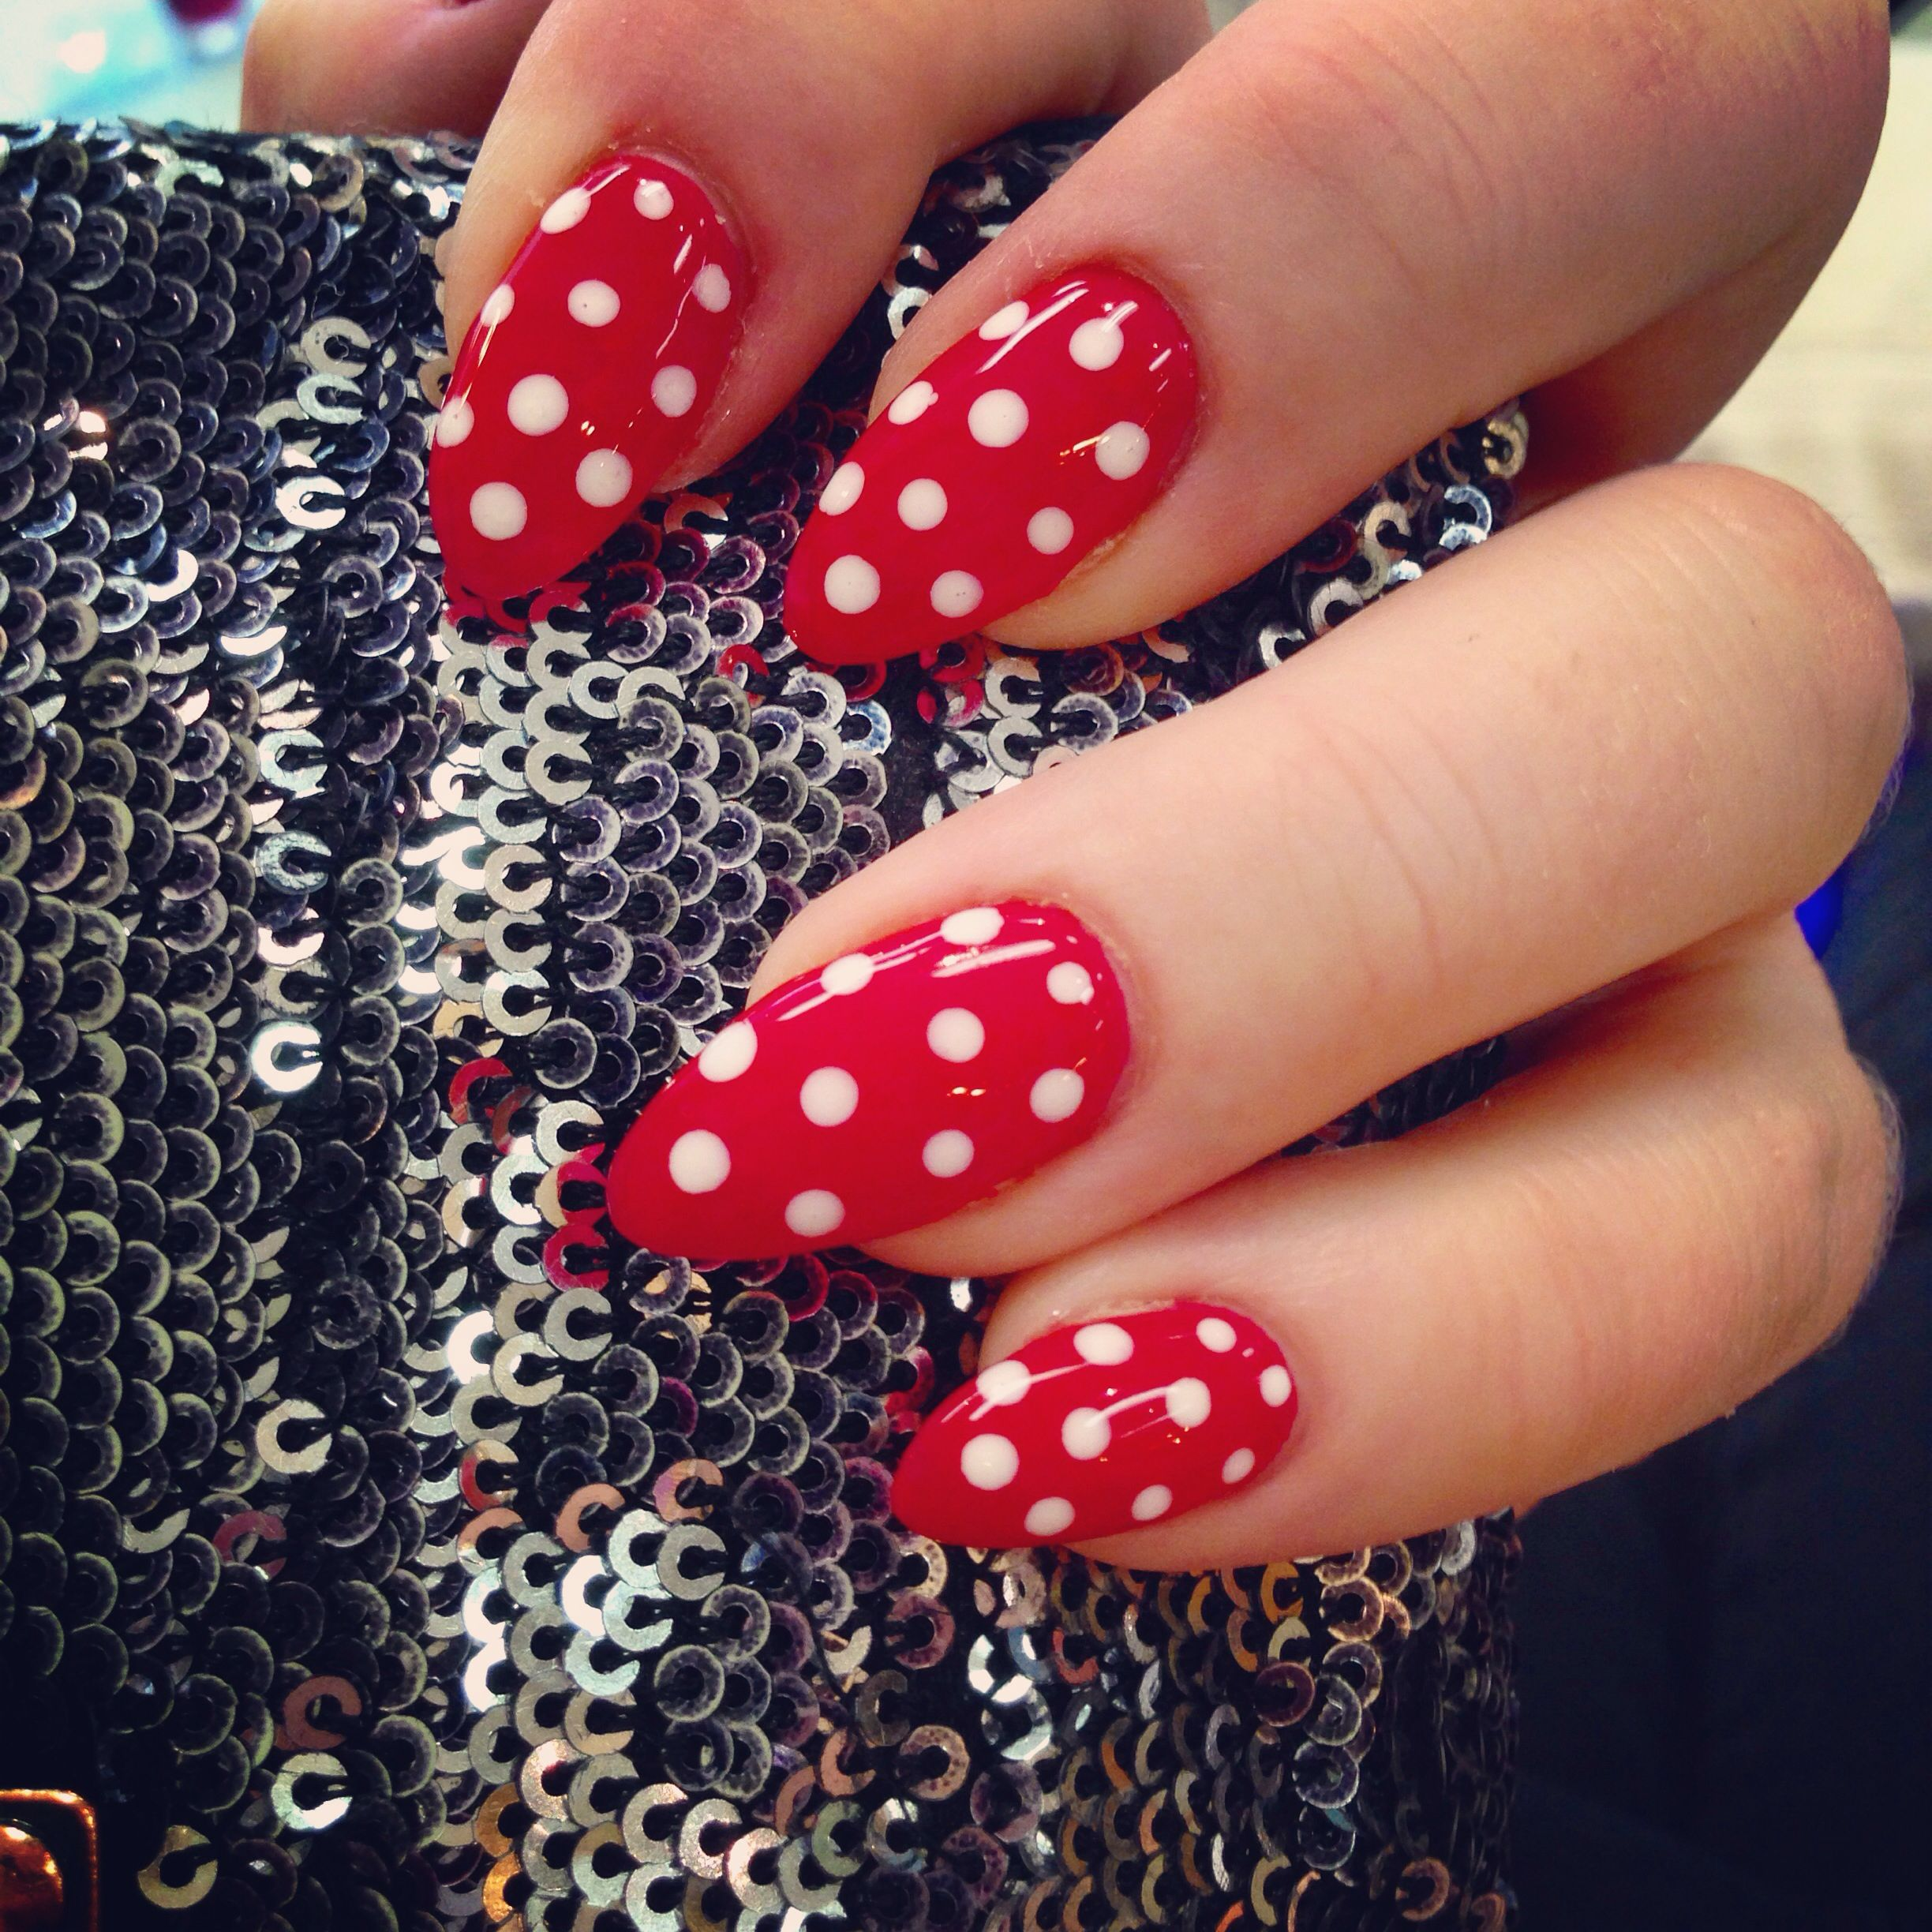 Red Almond Shaped Gel Nails White Polka Dots Polka Dot Nail Art Polka Dot Nails Dot Nail Art